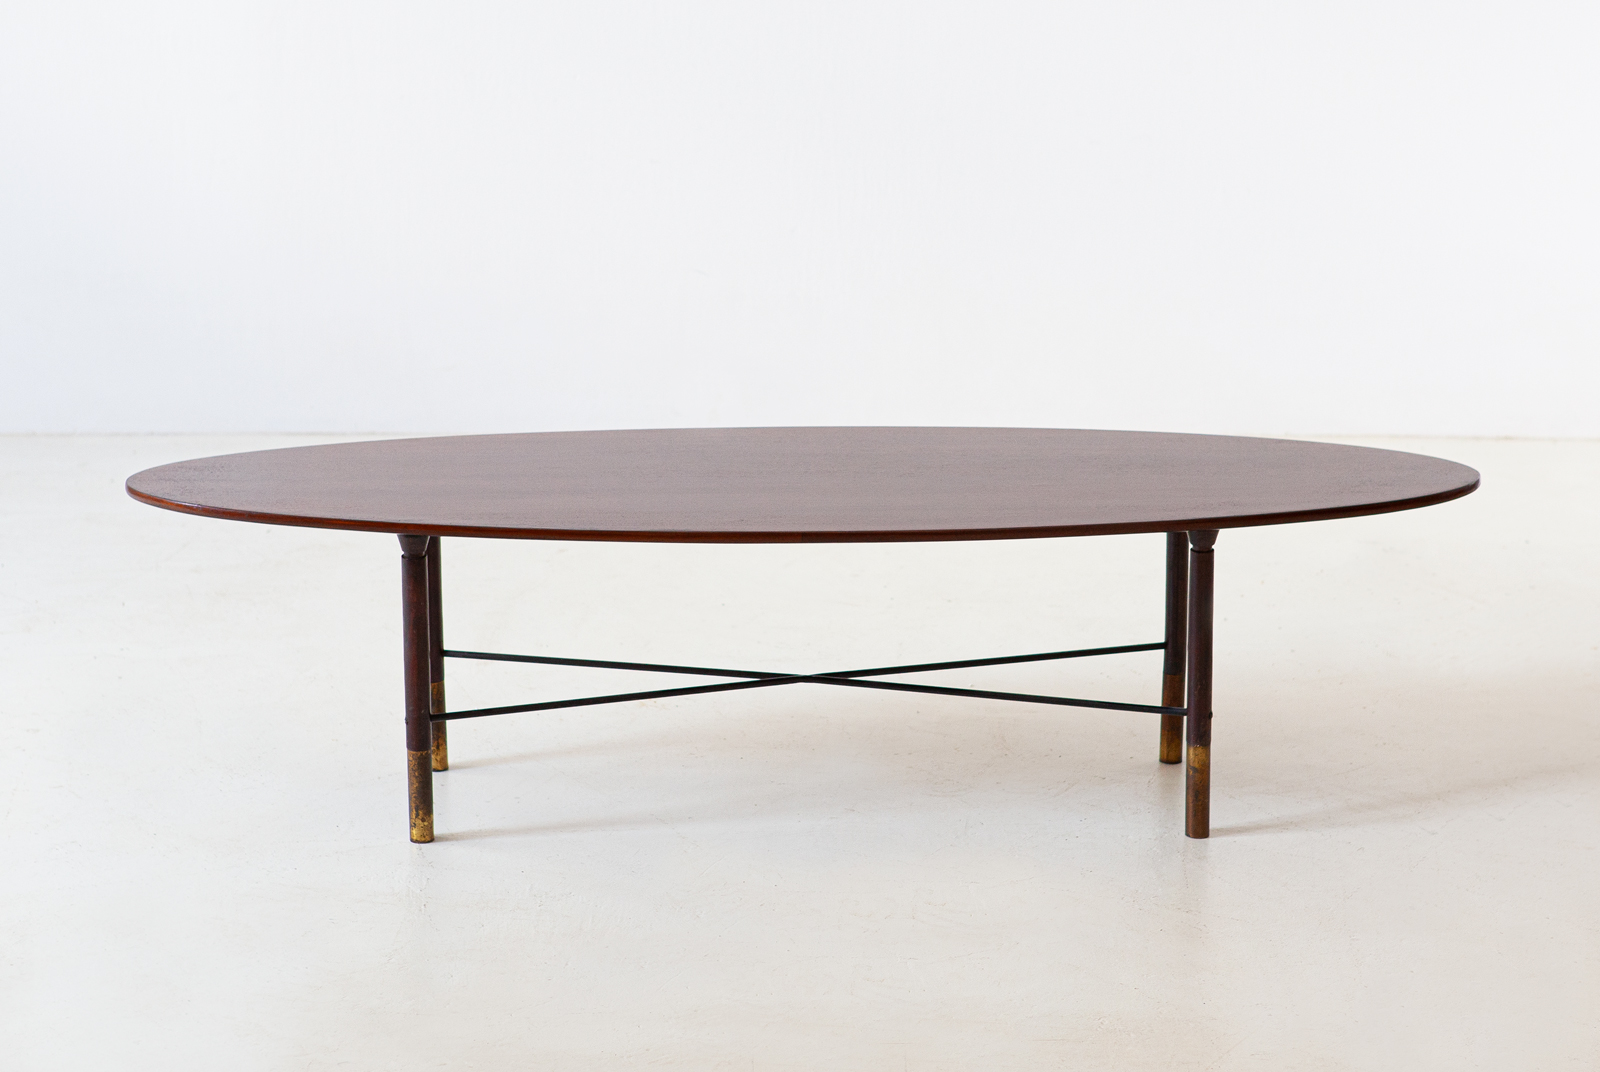 1950s-dark-teak-and-brass-elliptical-coffee-table-9-t90